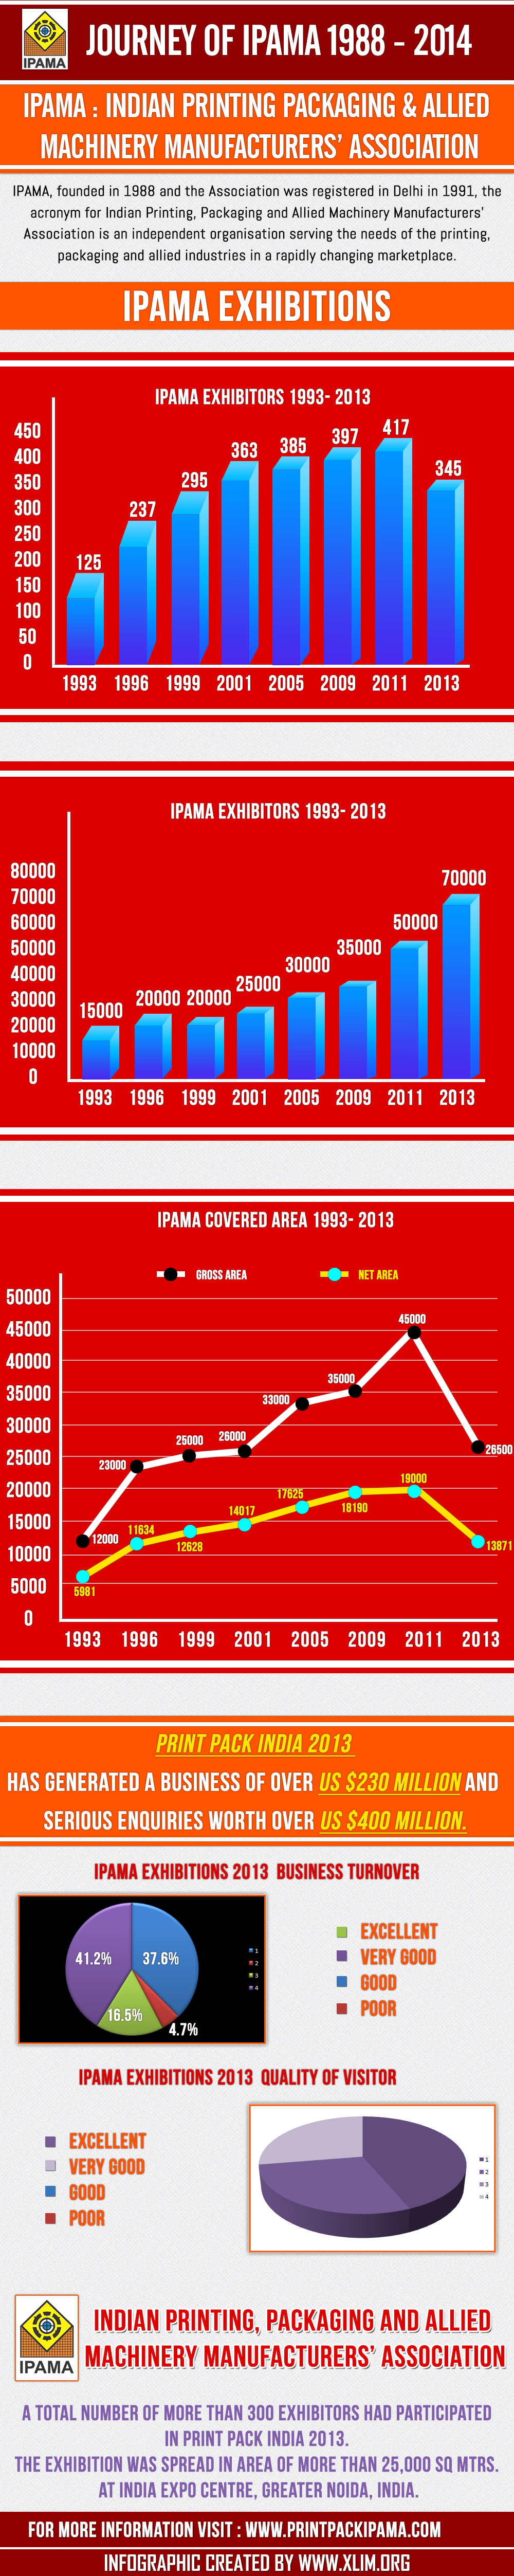 Journey of IPAMA 1988-2014_IPAMA